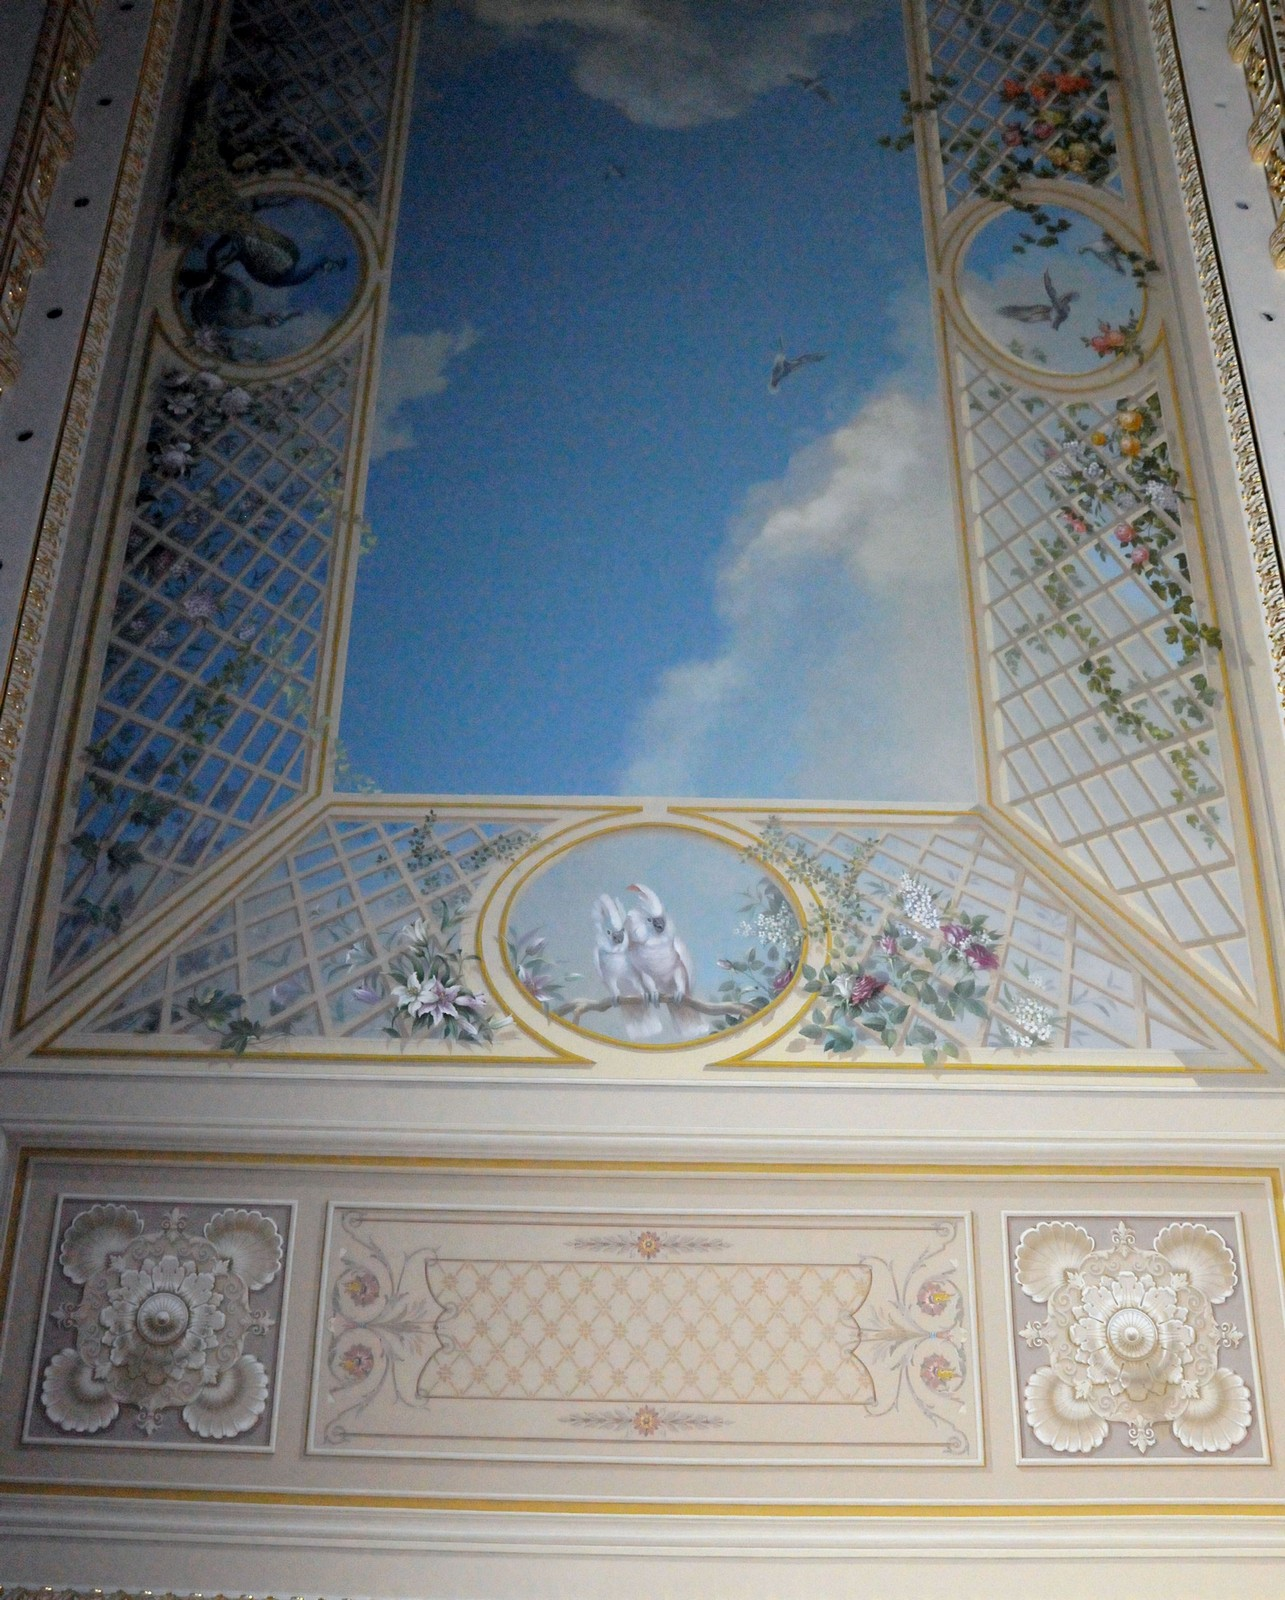 Fragment of painting trompe l'oeil on the ceiling